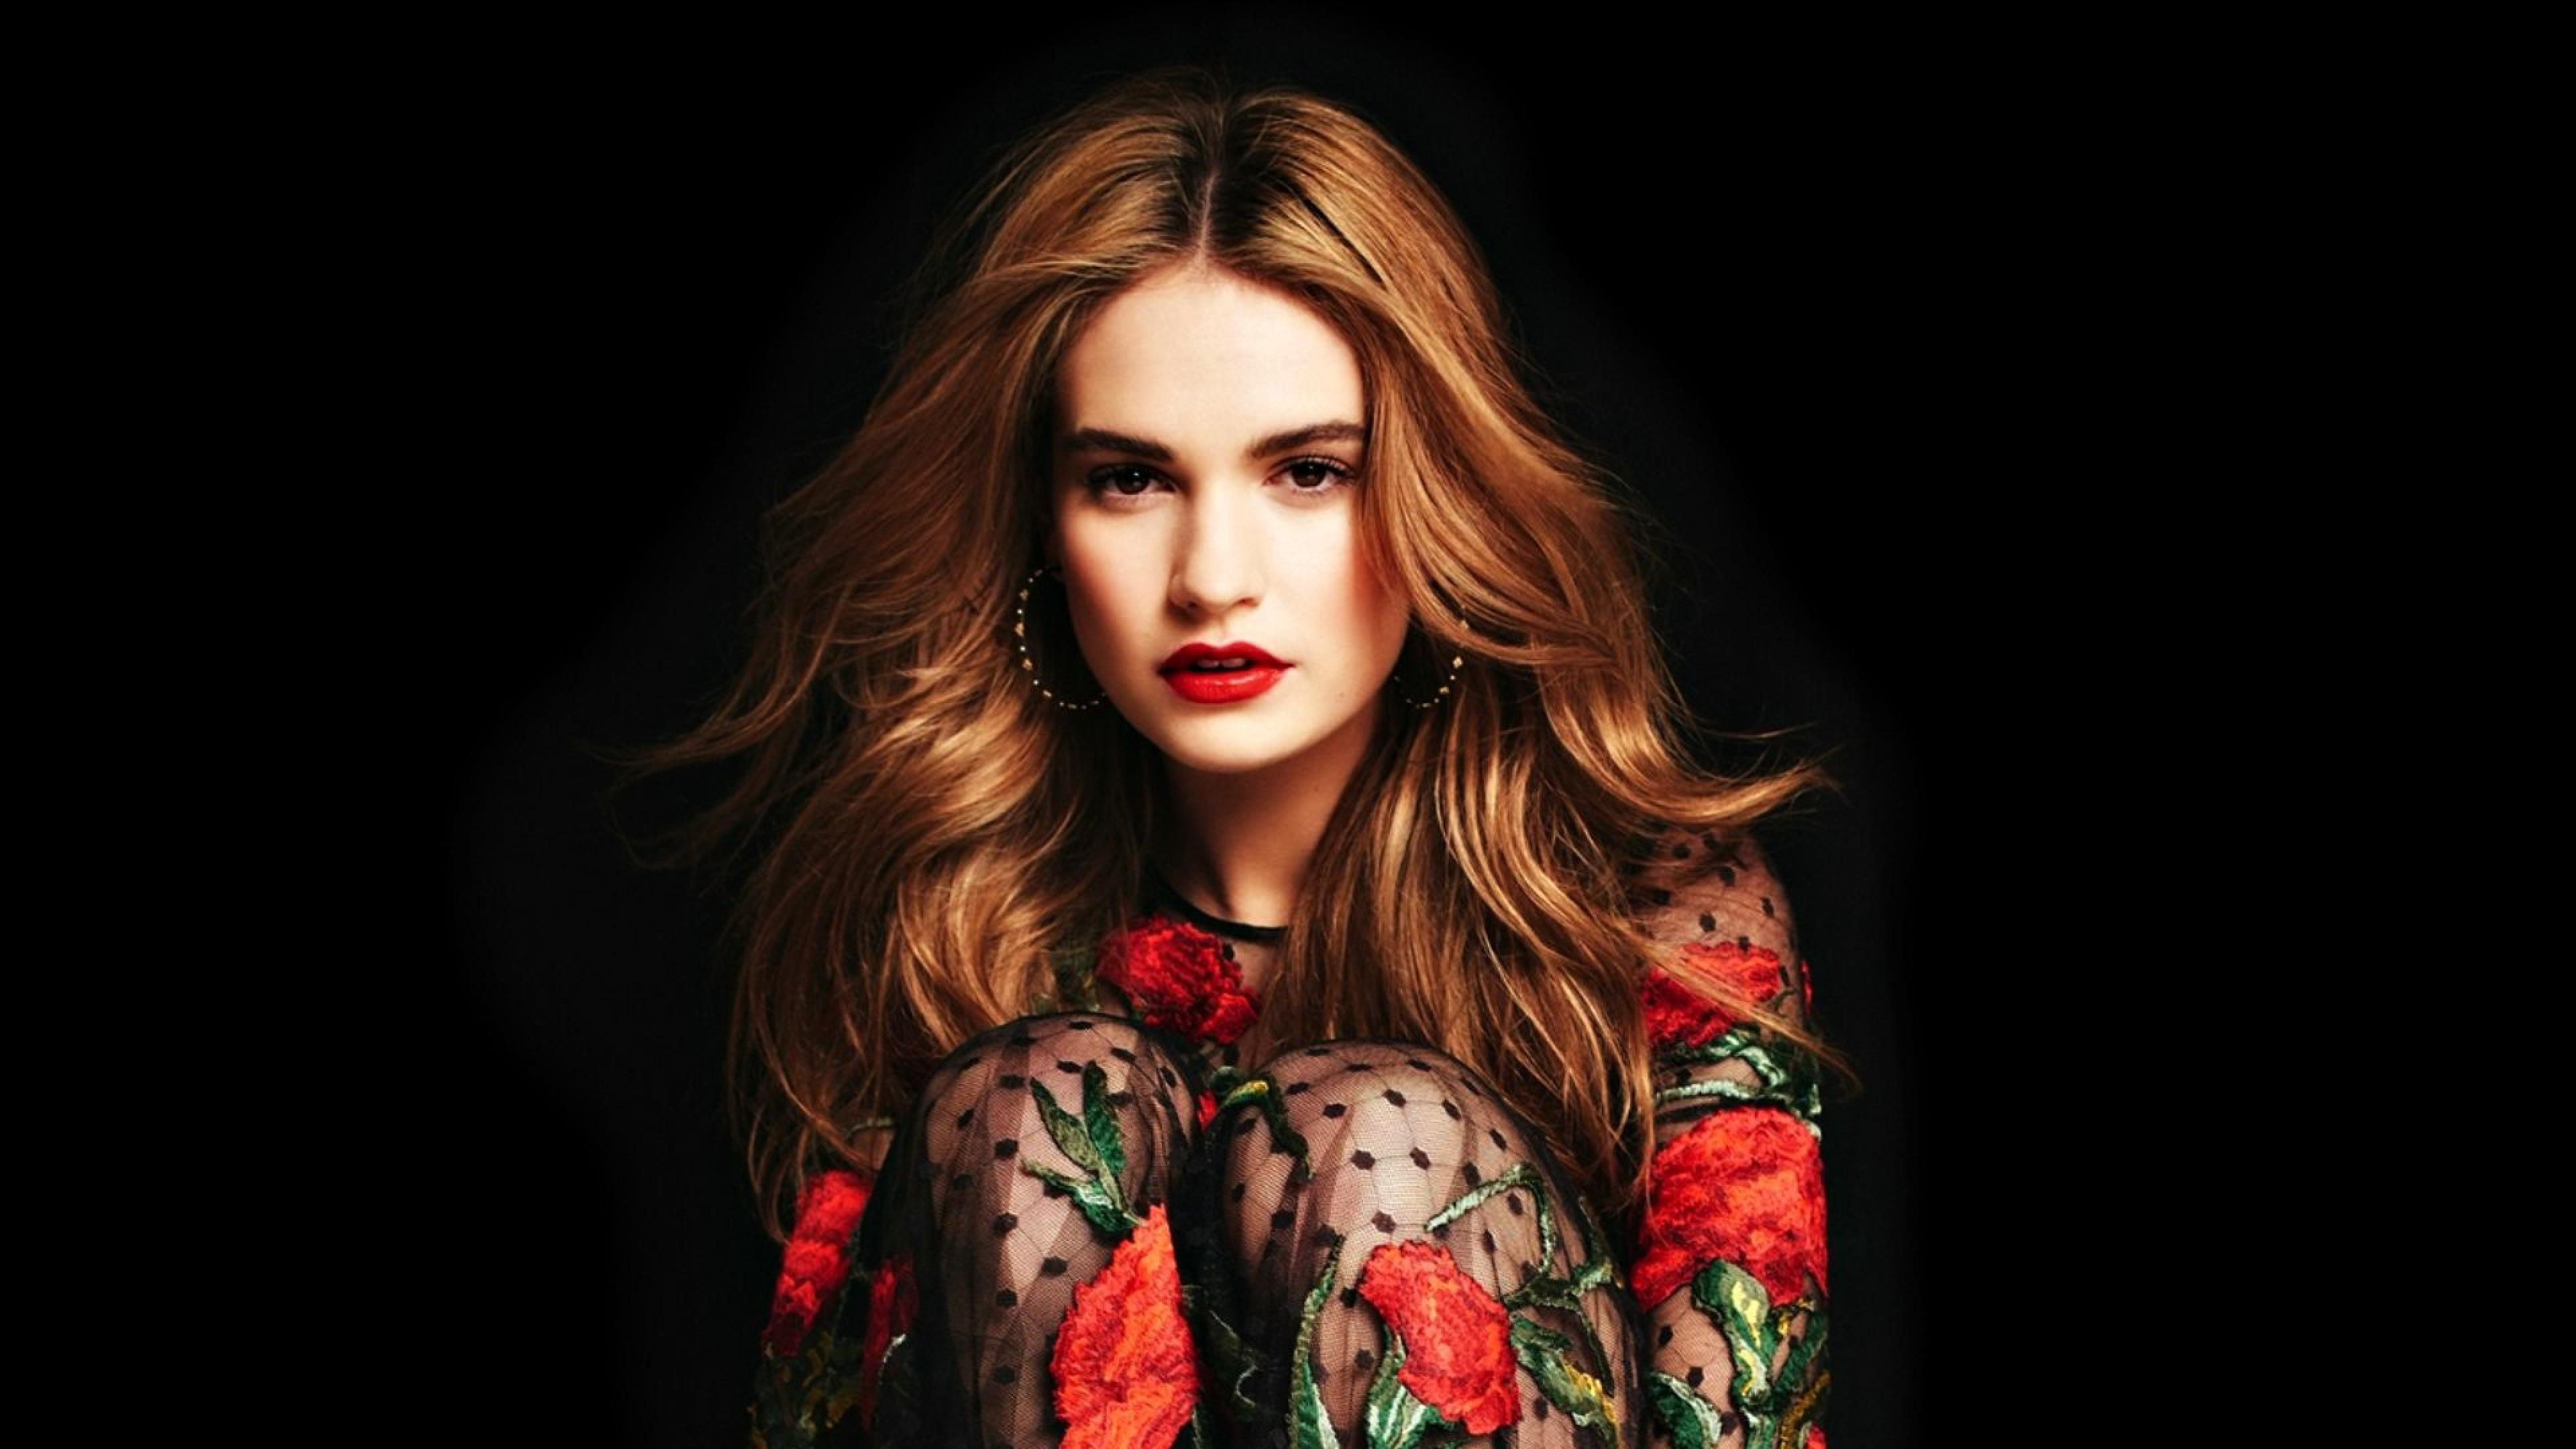 Pride And Prejudice Quotes Wallpaper Wallpaper Lily James Most Popular Celebs Actress